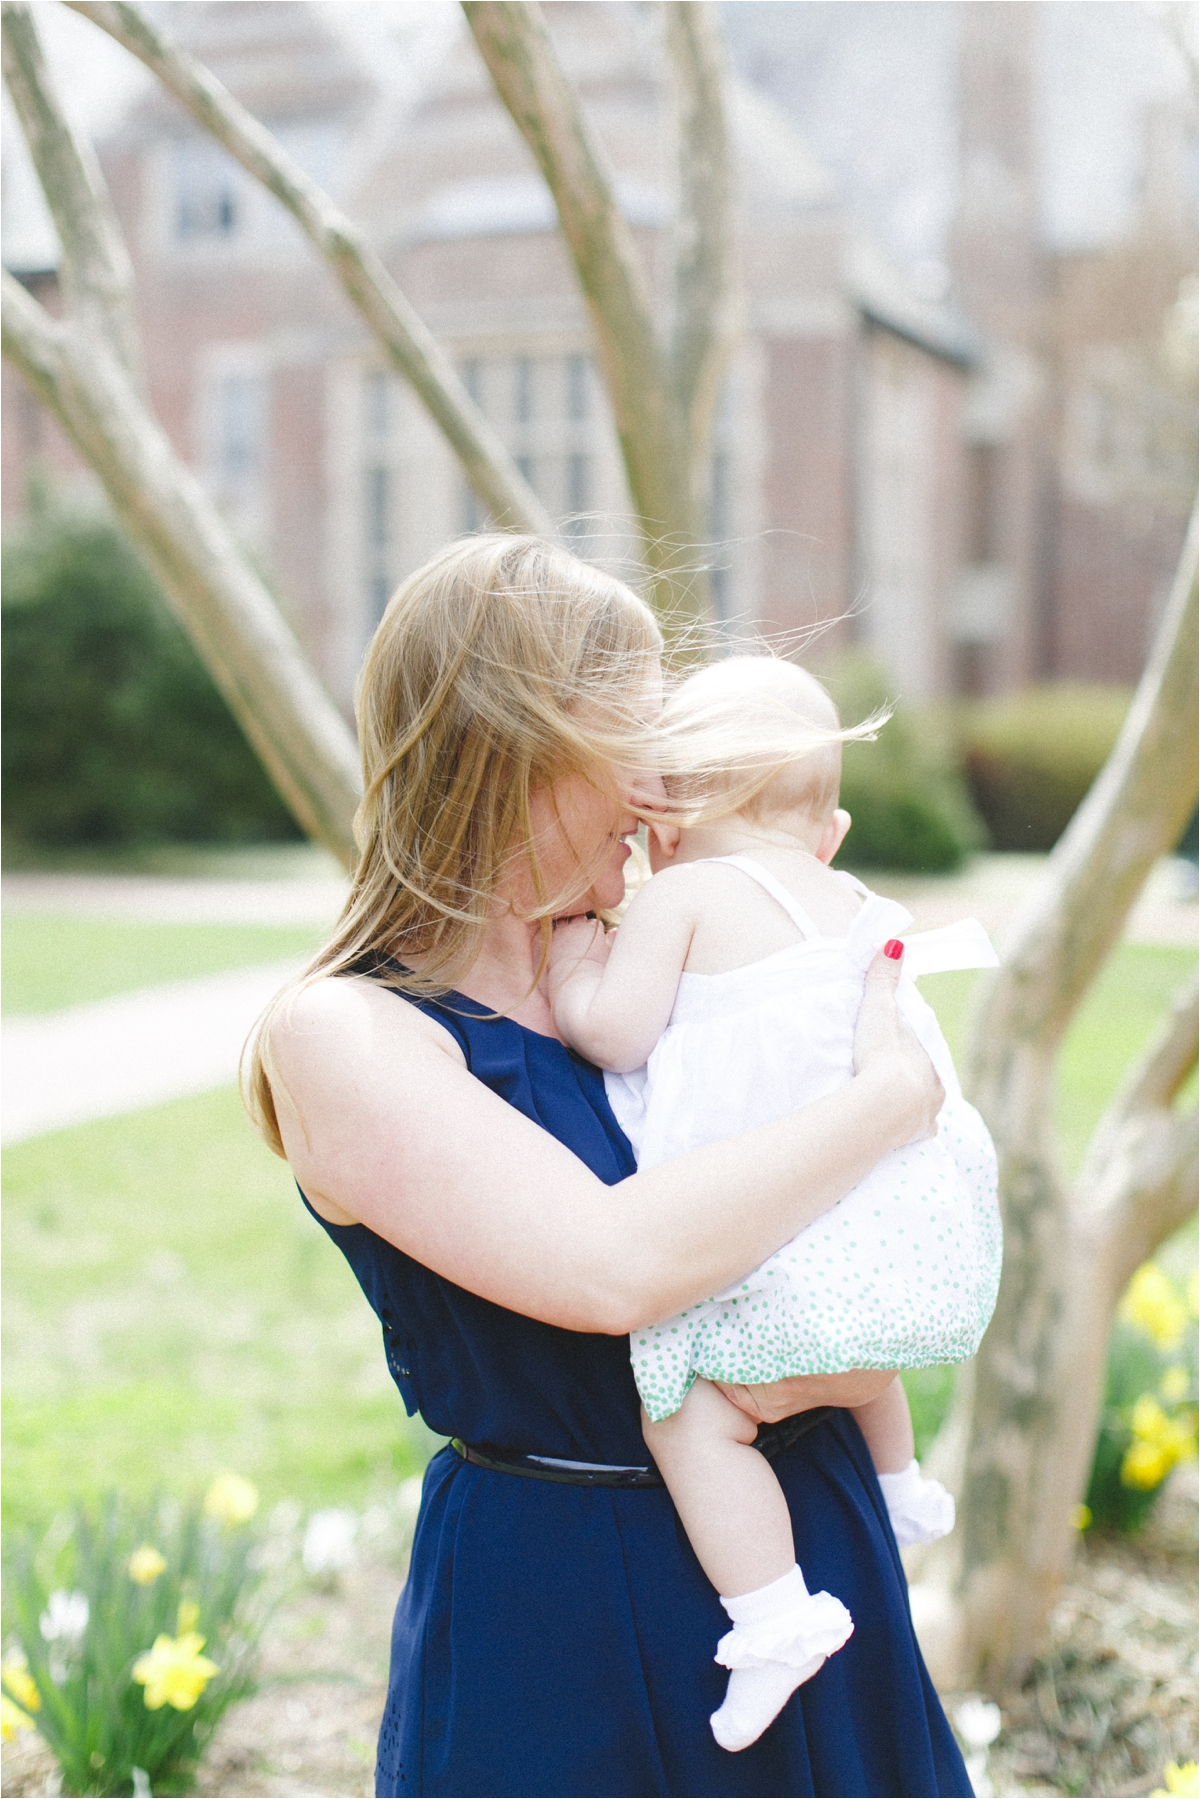 heather-paul-reese-spring-family-lifestyle-portraits_0001